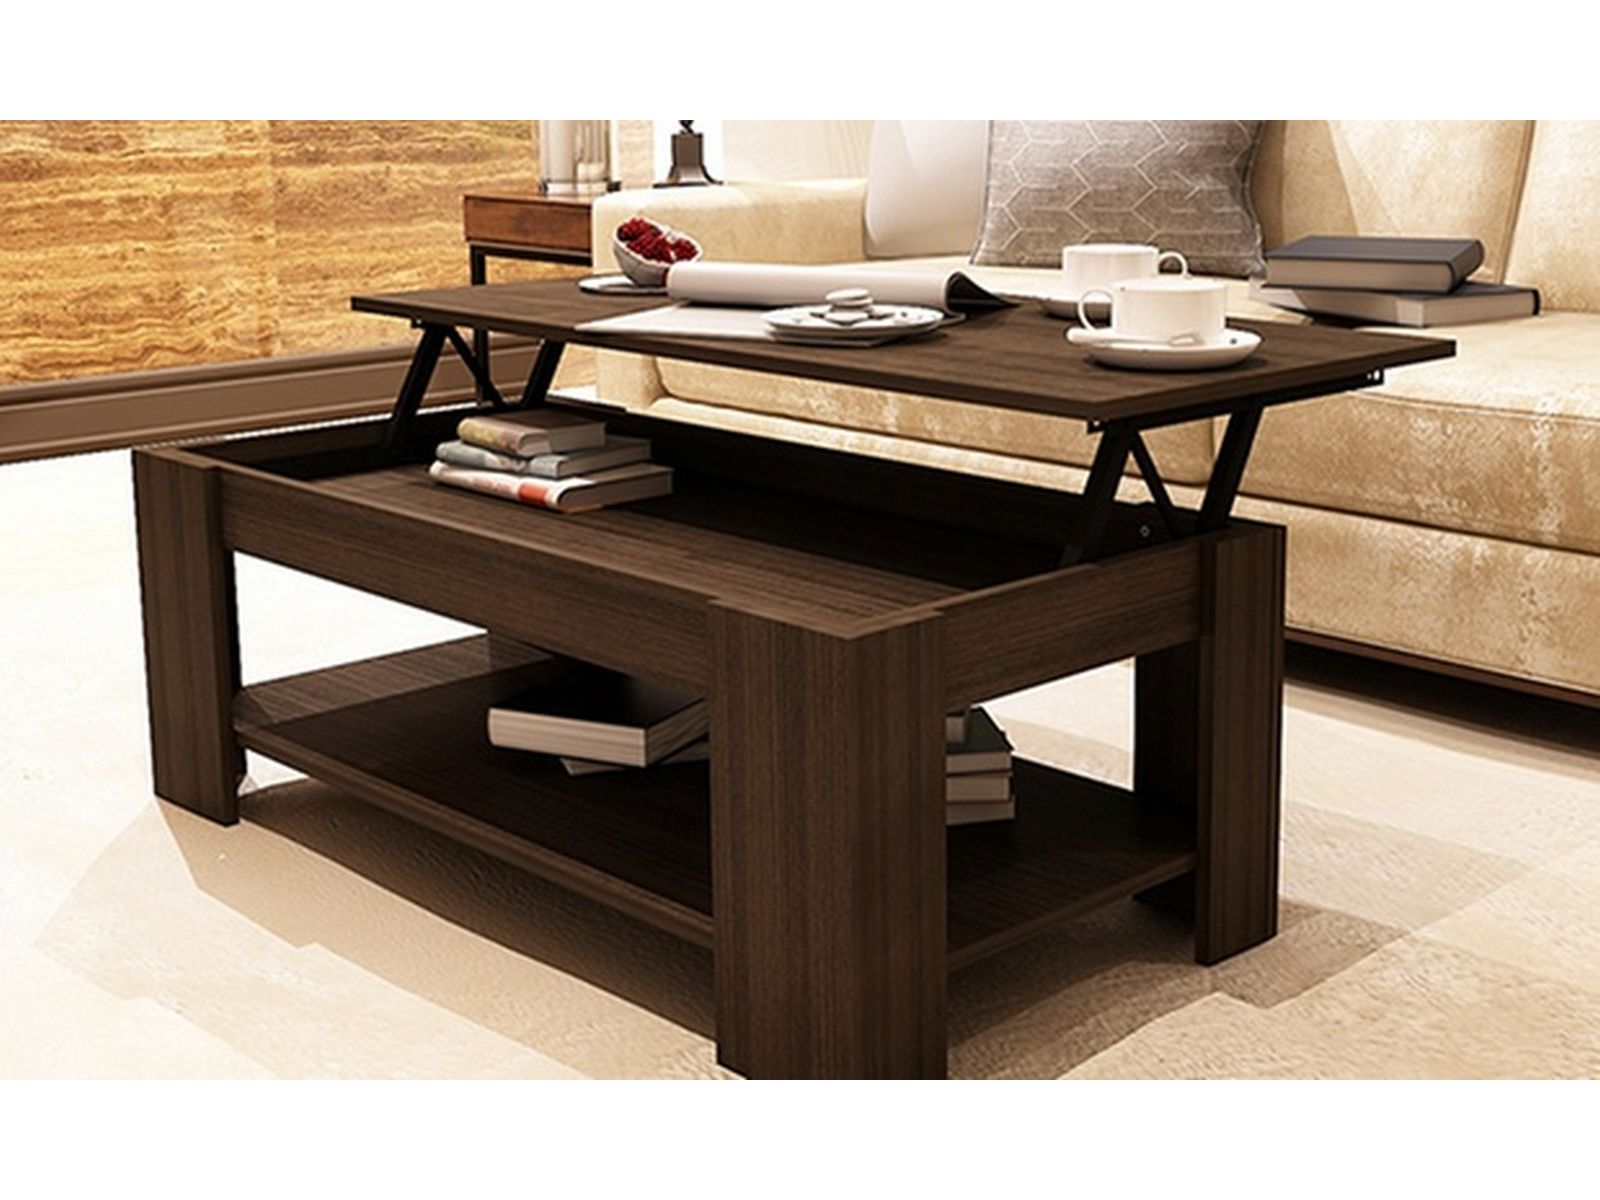 Coffee Table With Lift Up Top Uk In 2020 Coffee Table Living Room Modern Coffee Table Rectangle Modern Coffee Table